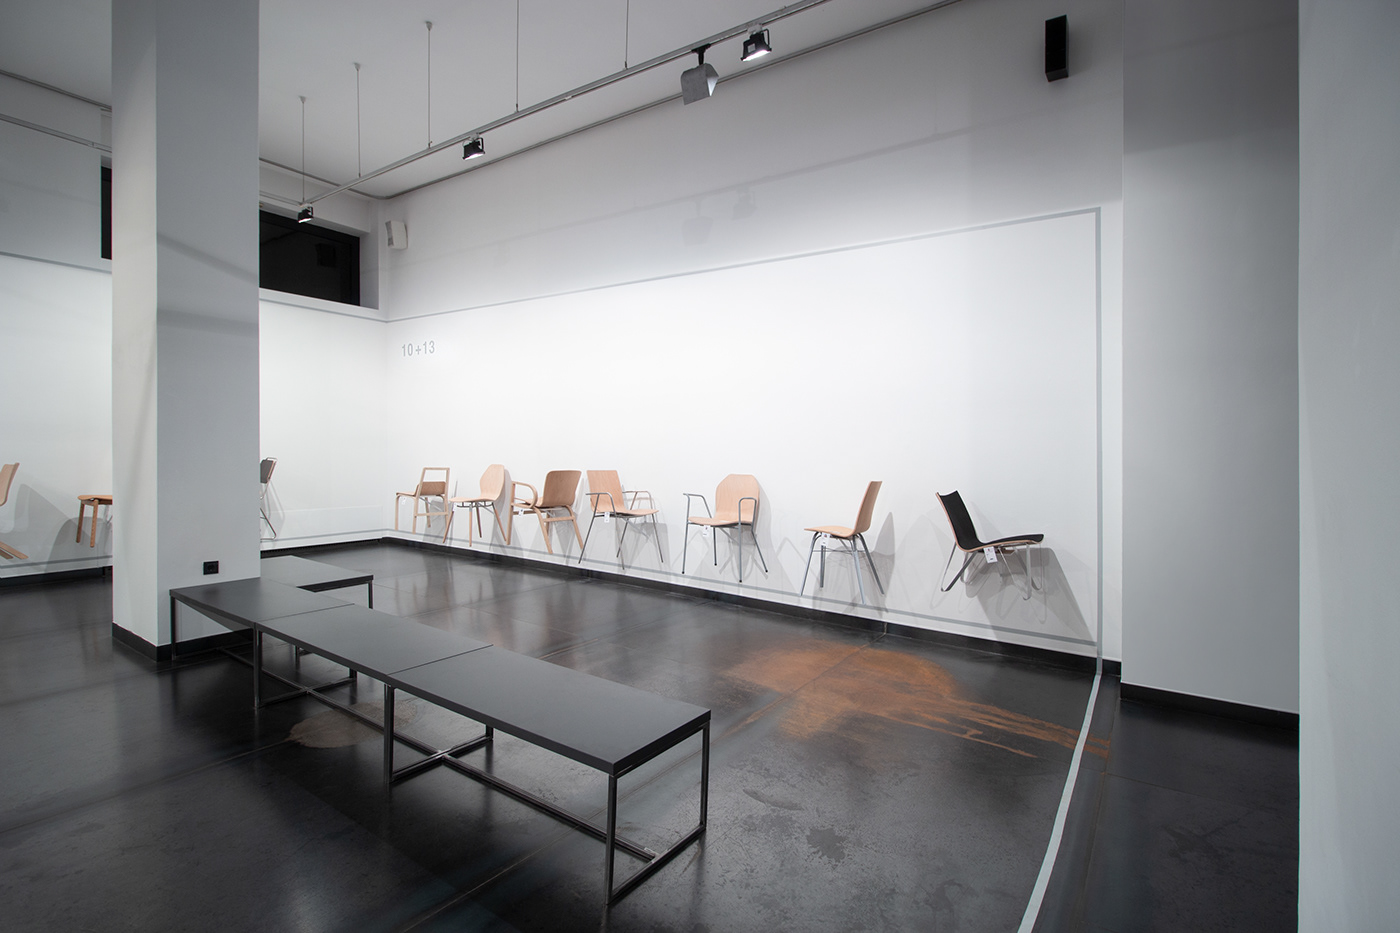 Exhibition  industrial mome IO LINE AND ROUND furniture design  chair experimental steel floating chairs